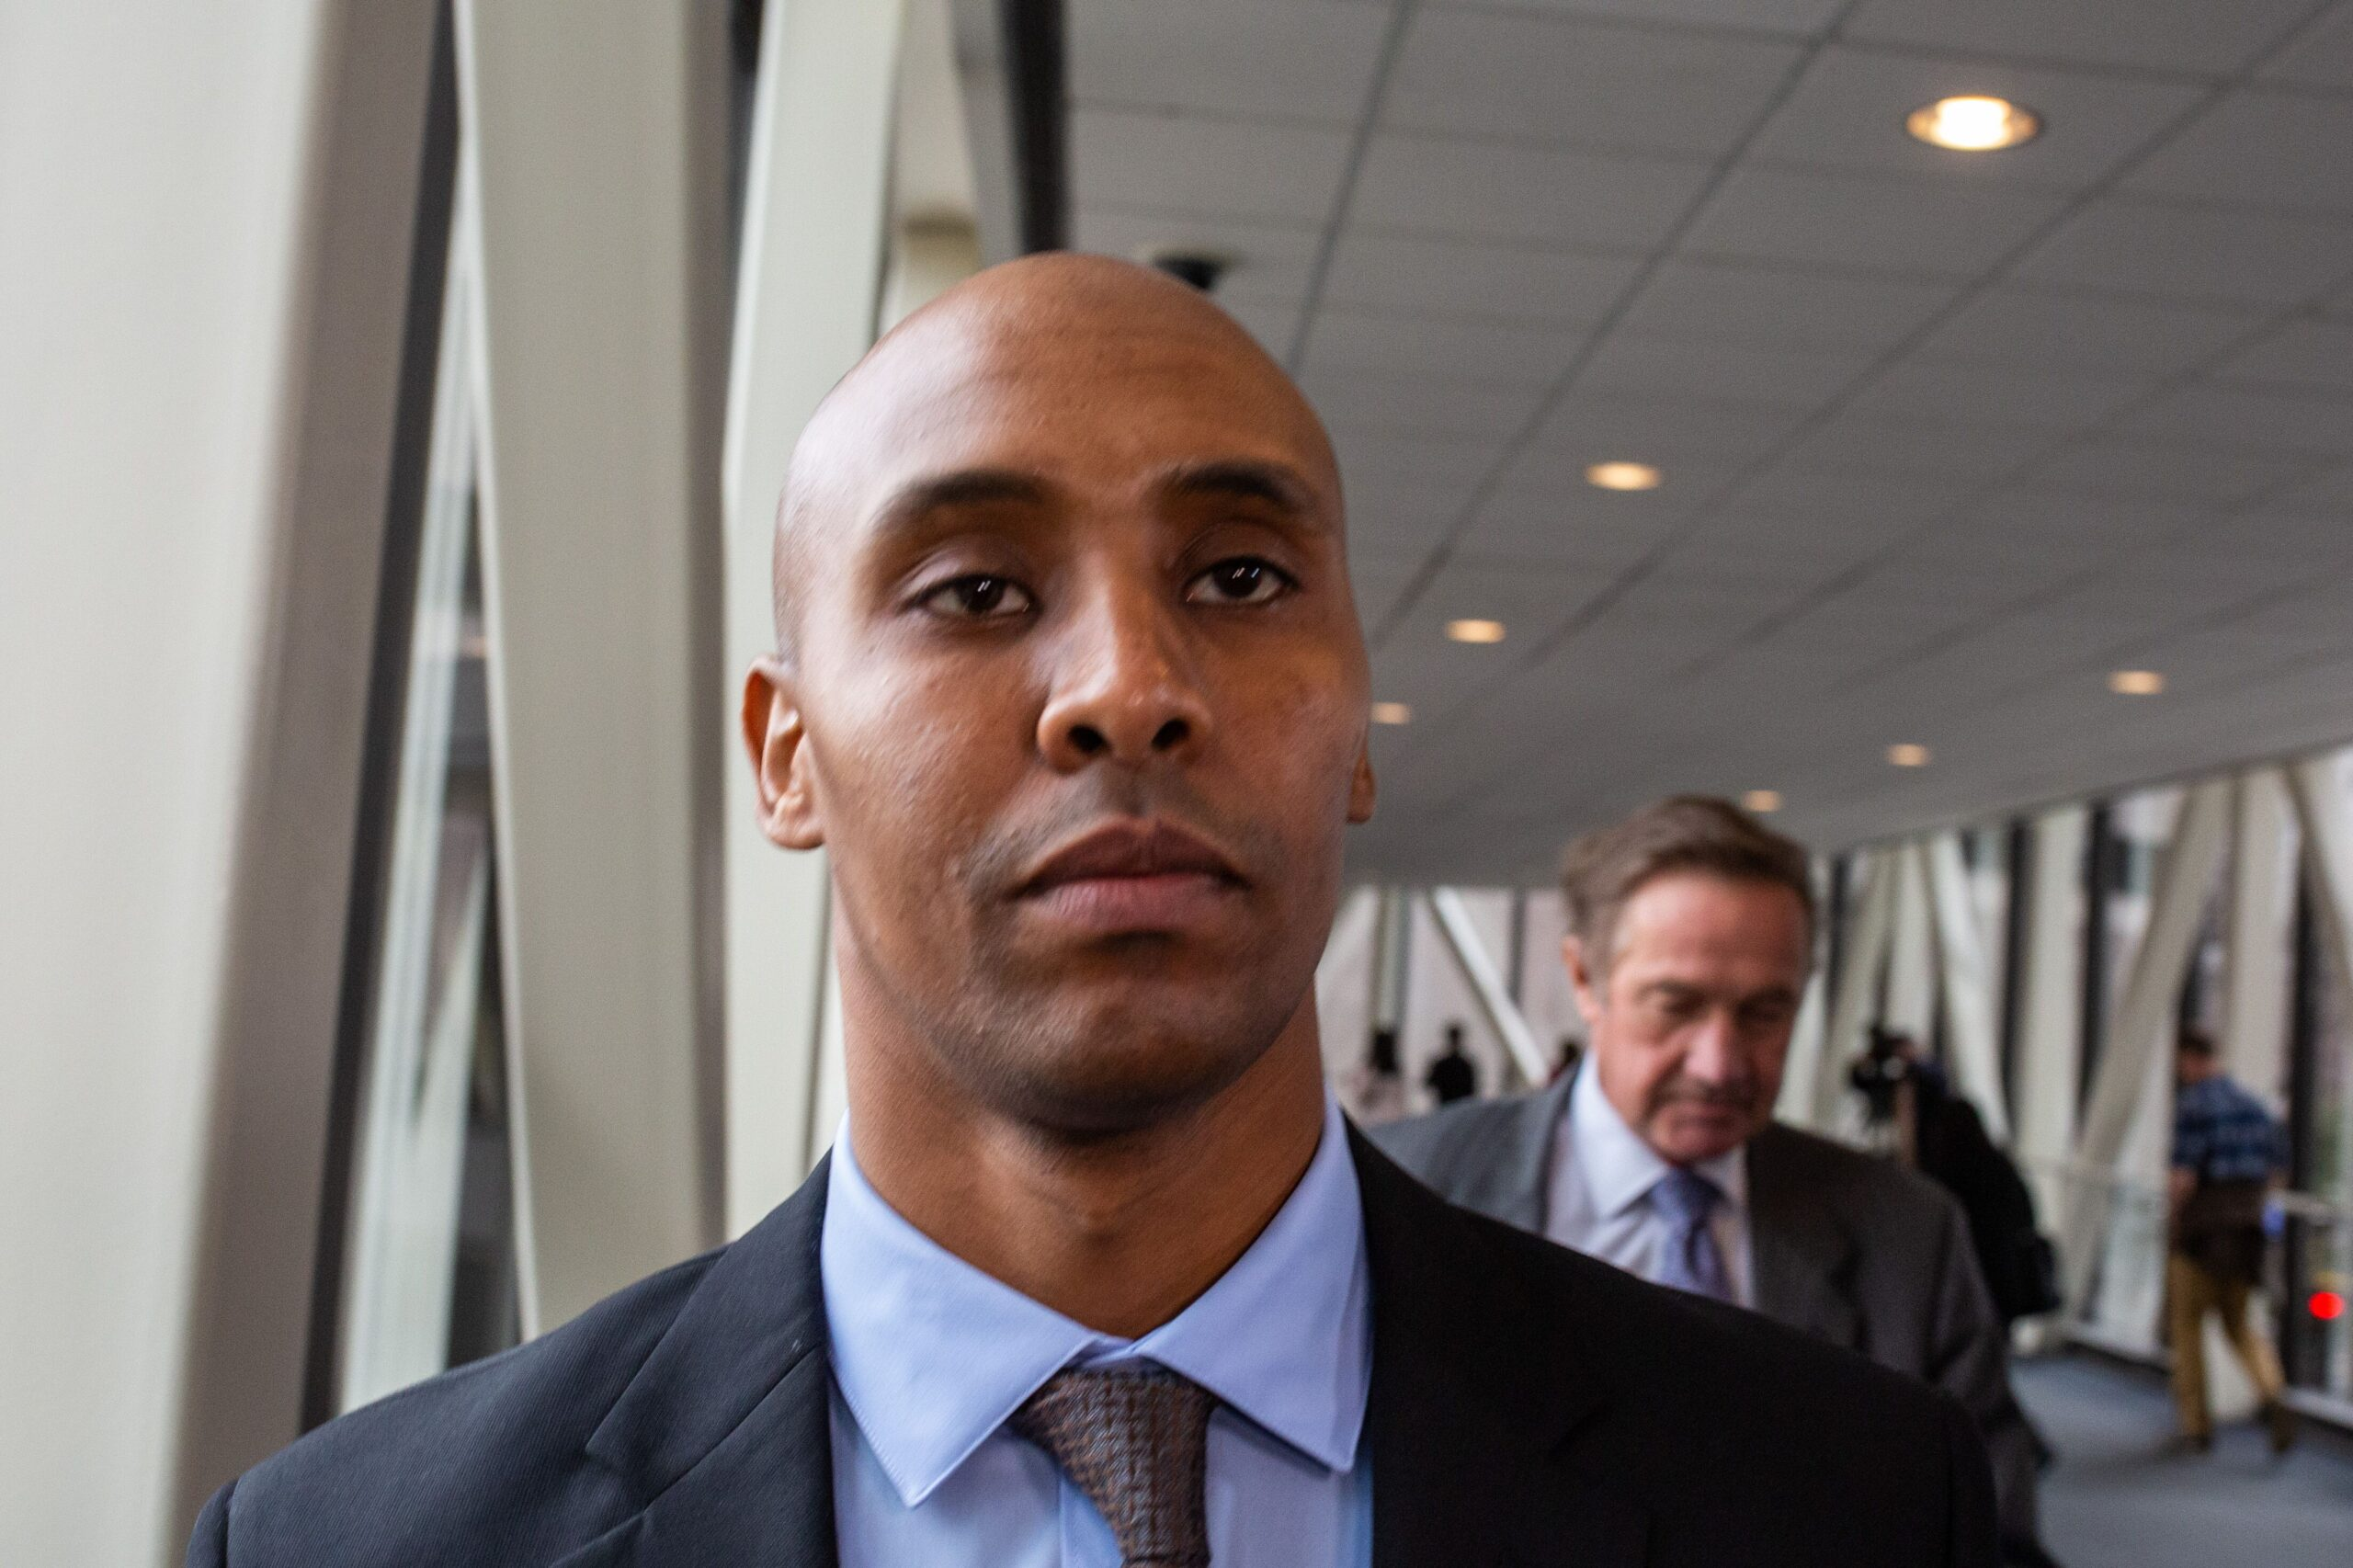 <i>Kerem Yucel/AFP//Getty Images</i><br/>A Minnesota court on Wednesday vacated former Minneapolis police officer Mohamed Noor's 3rd-degree murder conviction. Noor is seen here in Minneapolis